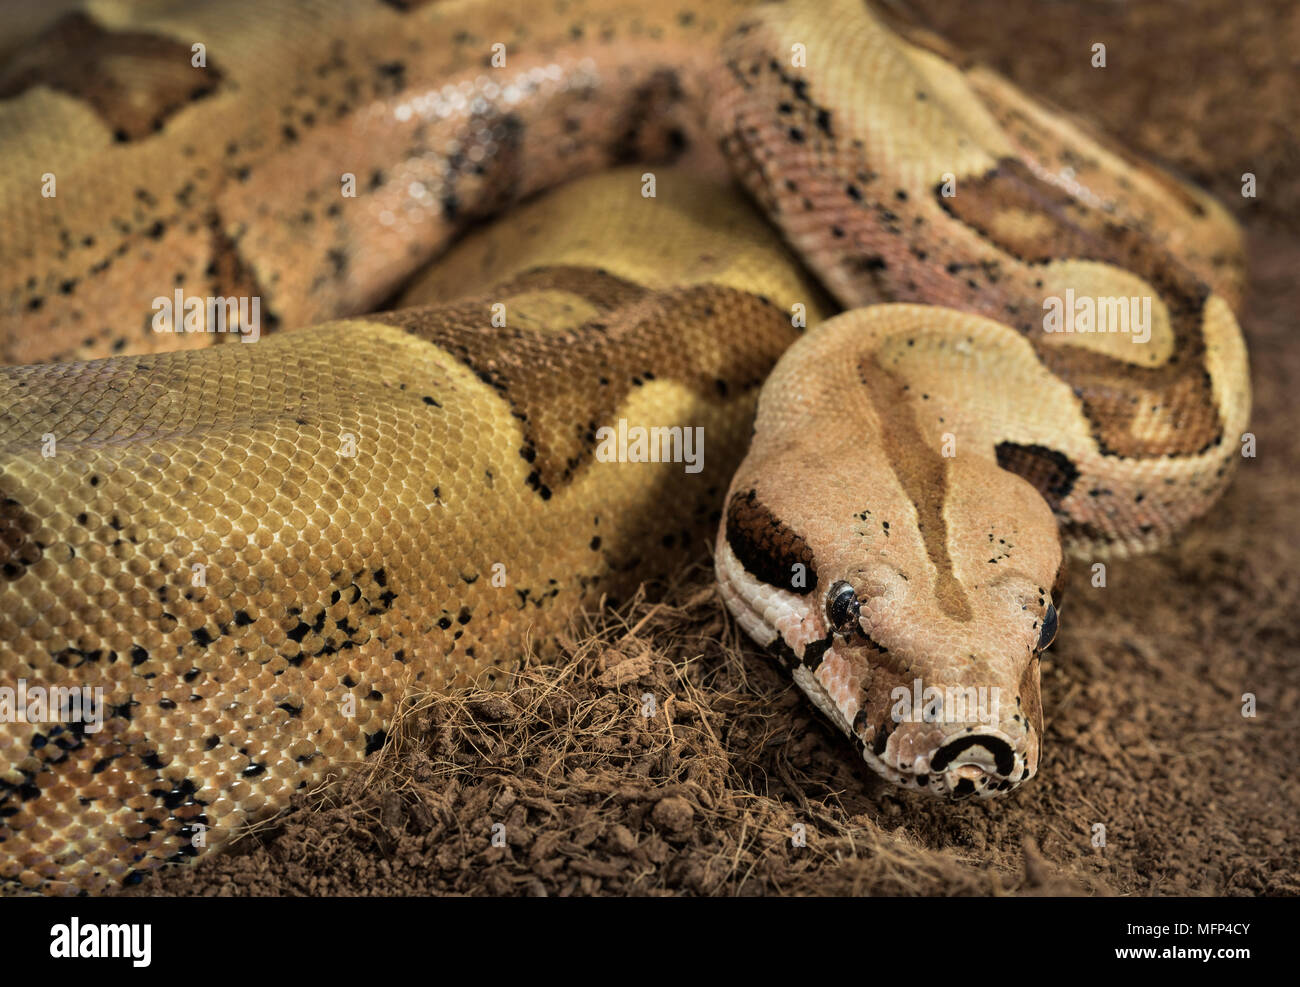 Albino Boa Constrictor High Resolution Stock Photography And Images Alamy